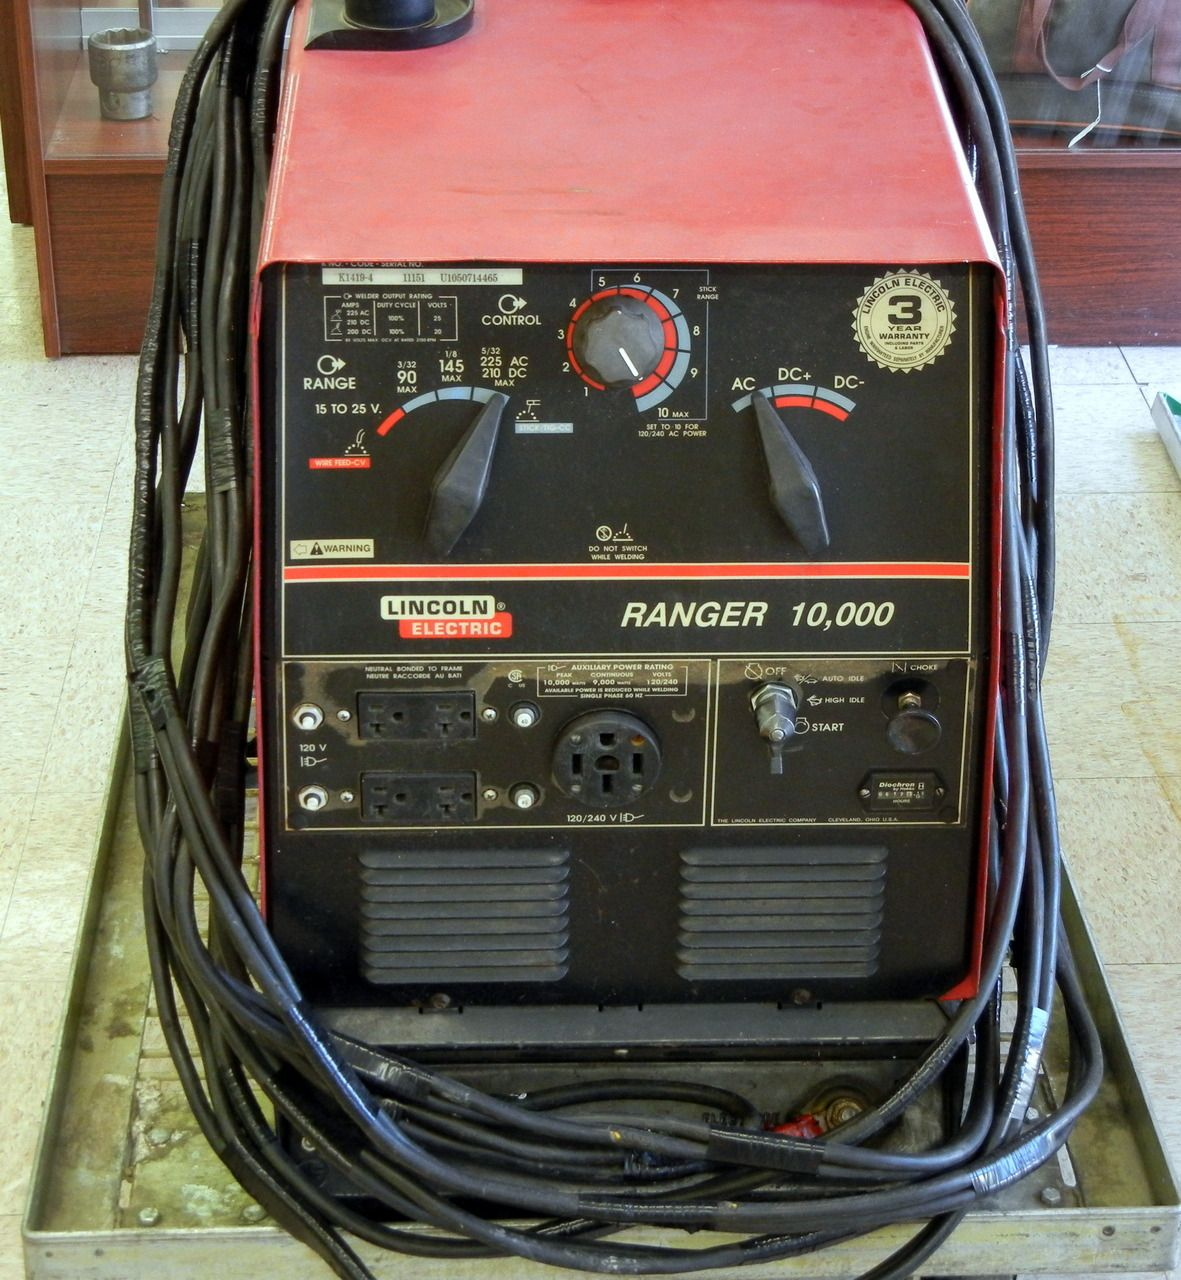 pin by plano pawn shop on tools welder generator welding ranger lincoln ranger 225 lincoln ranger 10000 wiring diagram [ 1181 x 1280 Pixel ]